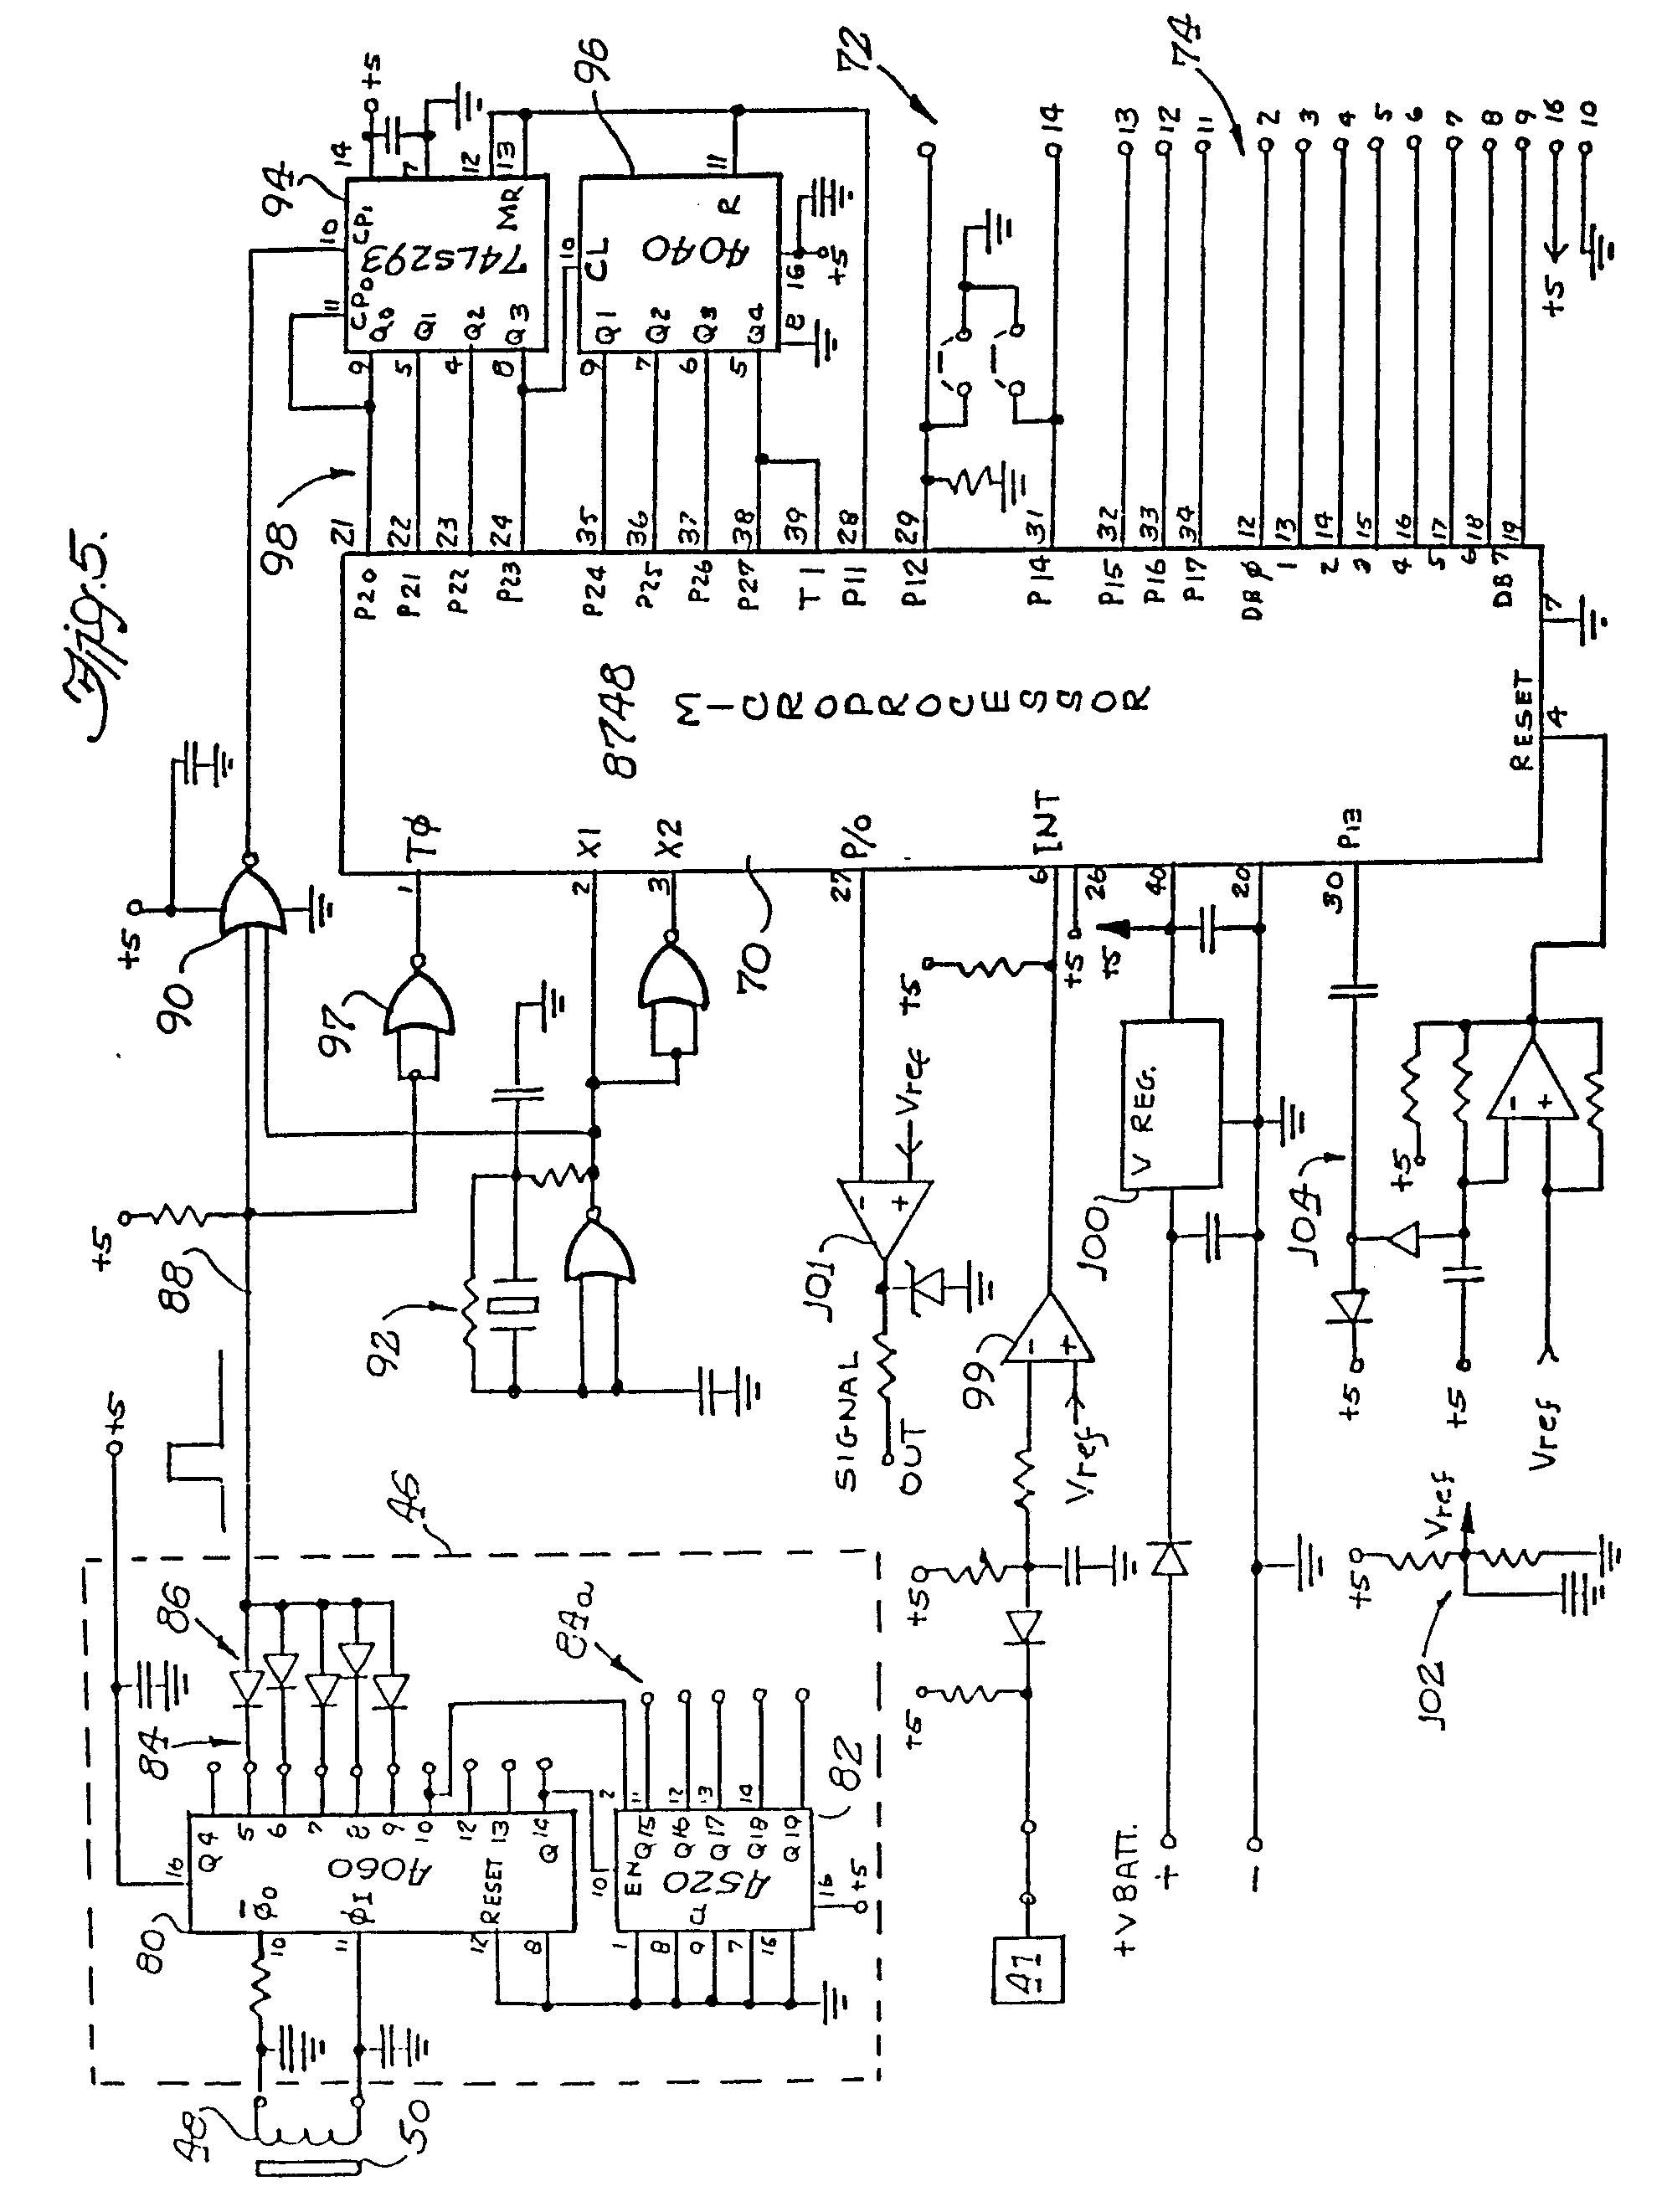 Electrical Wiring Diagram For Farmall 350